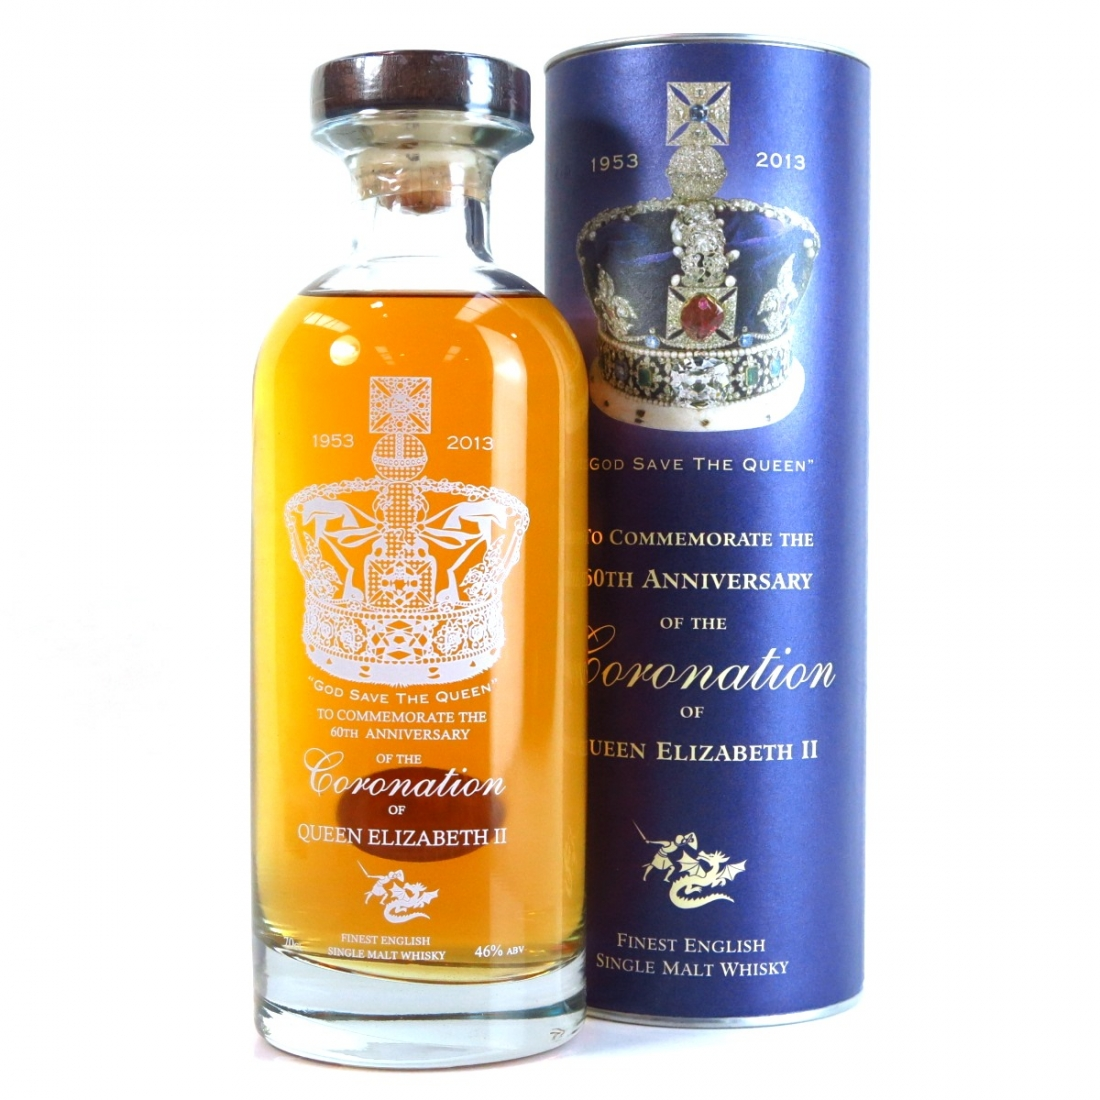 English Whisky Co 60th Anniversary of Queen Elizabeth II Coronation